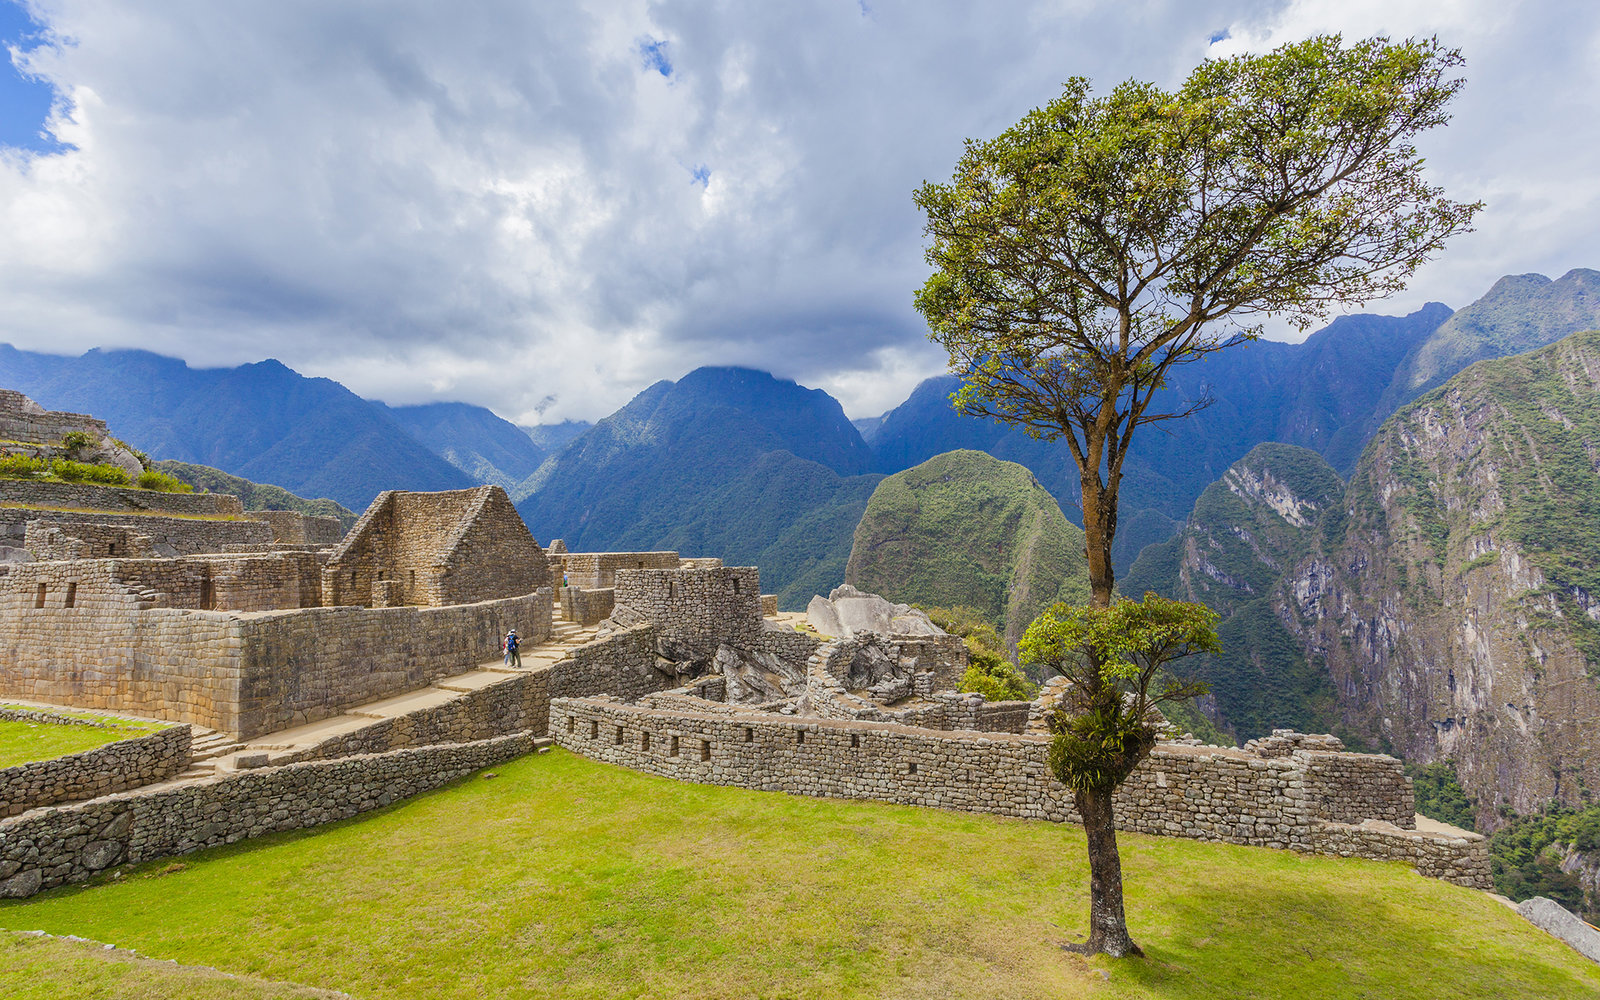 Peru, Machu Picchu, View at Machu Picchu. (Photo by: JTB/UIG via Getty Images) (Photo by: JTB Photo/UIG via Getty Images)